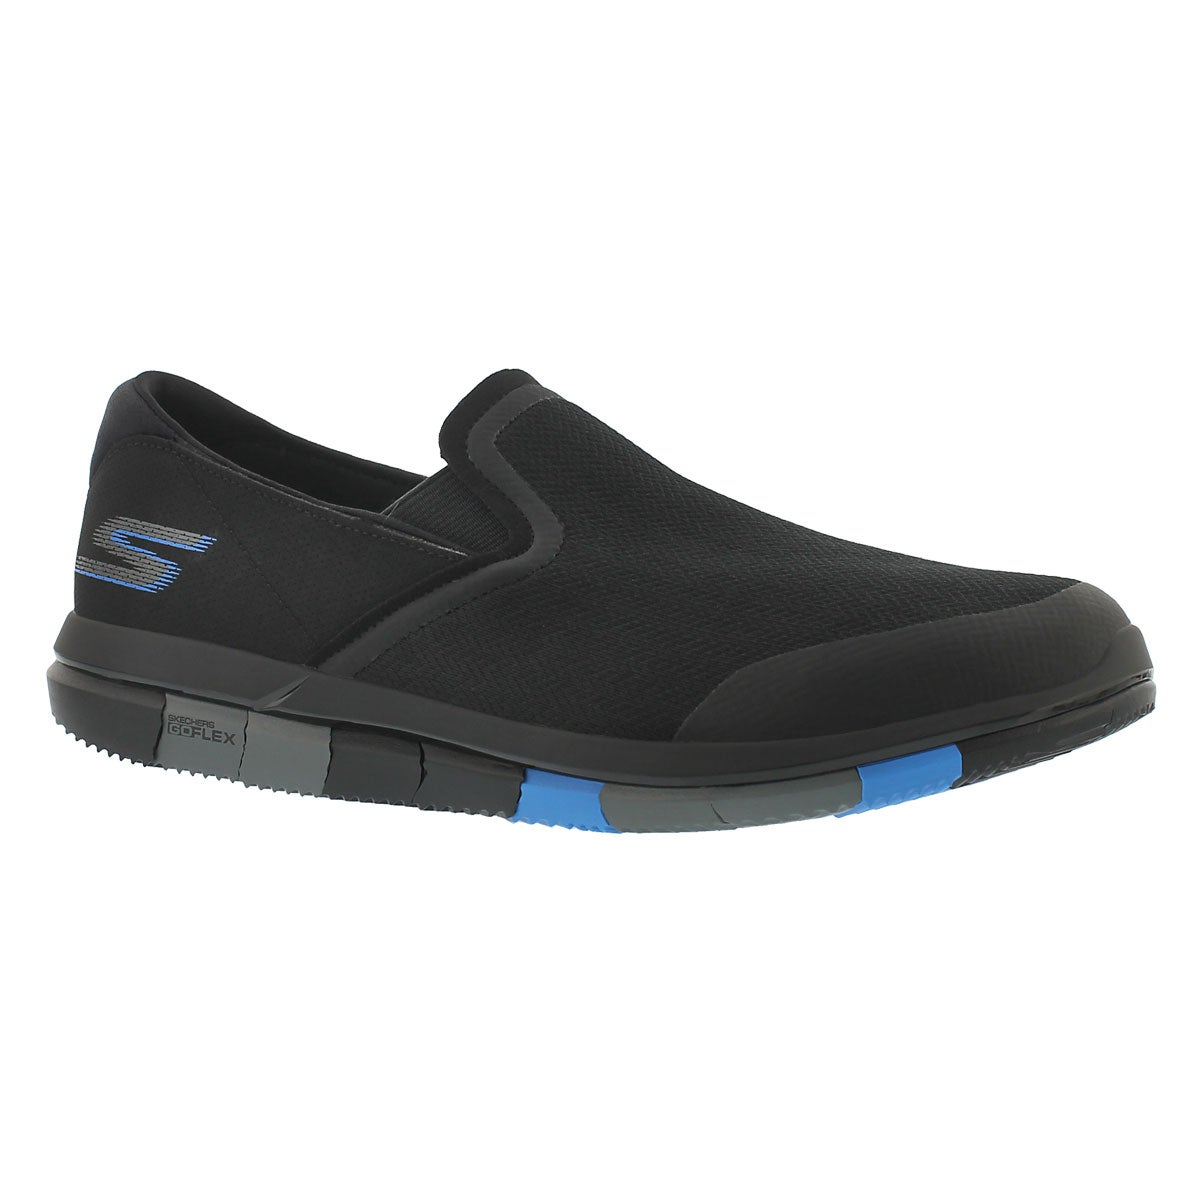 Mns GOflex blk/blue walking shoe